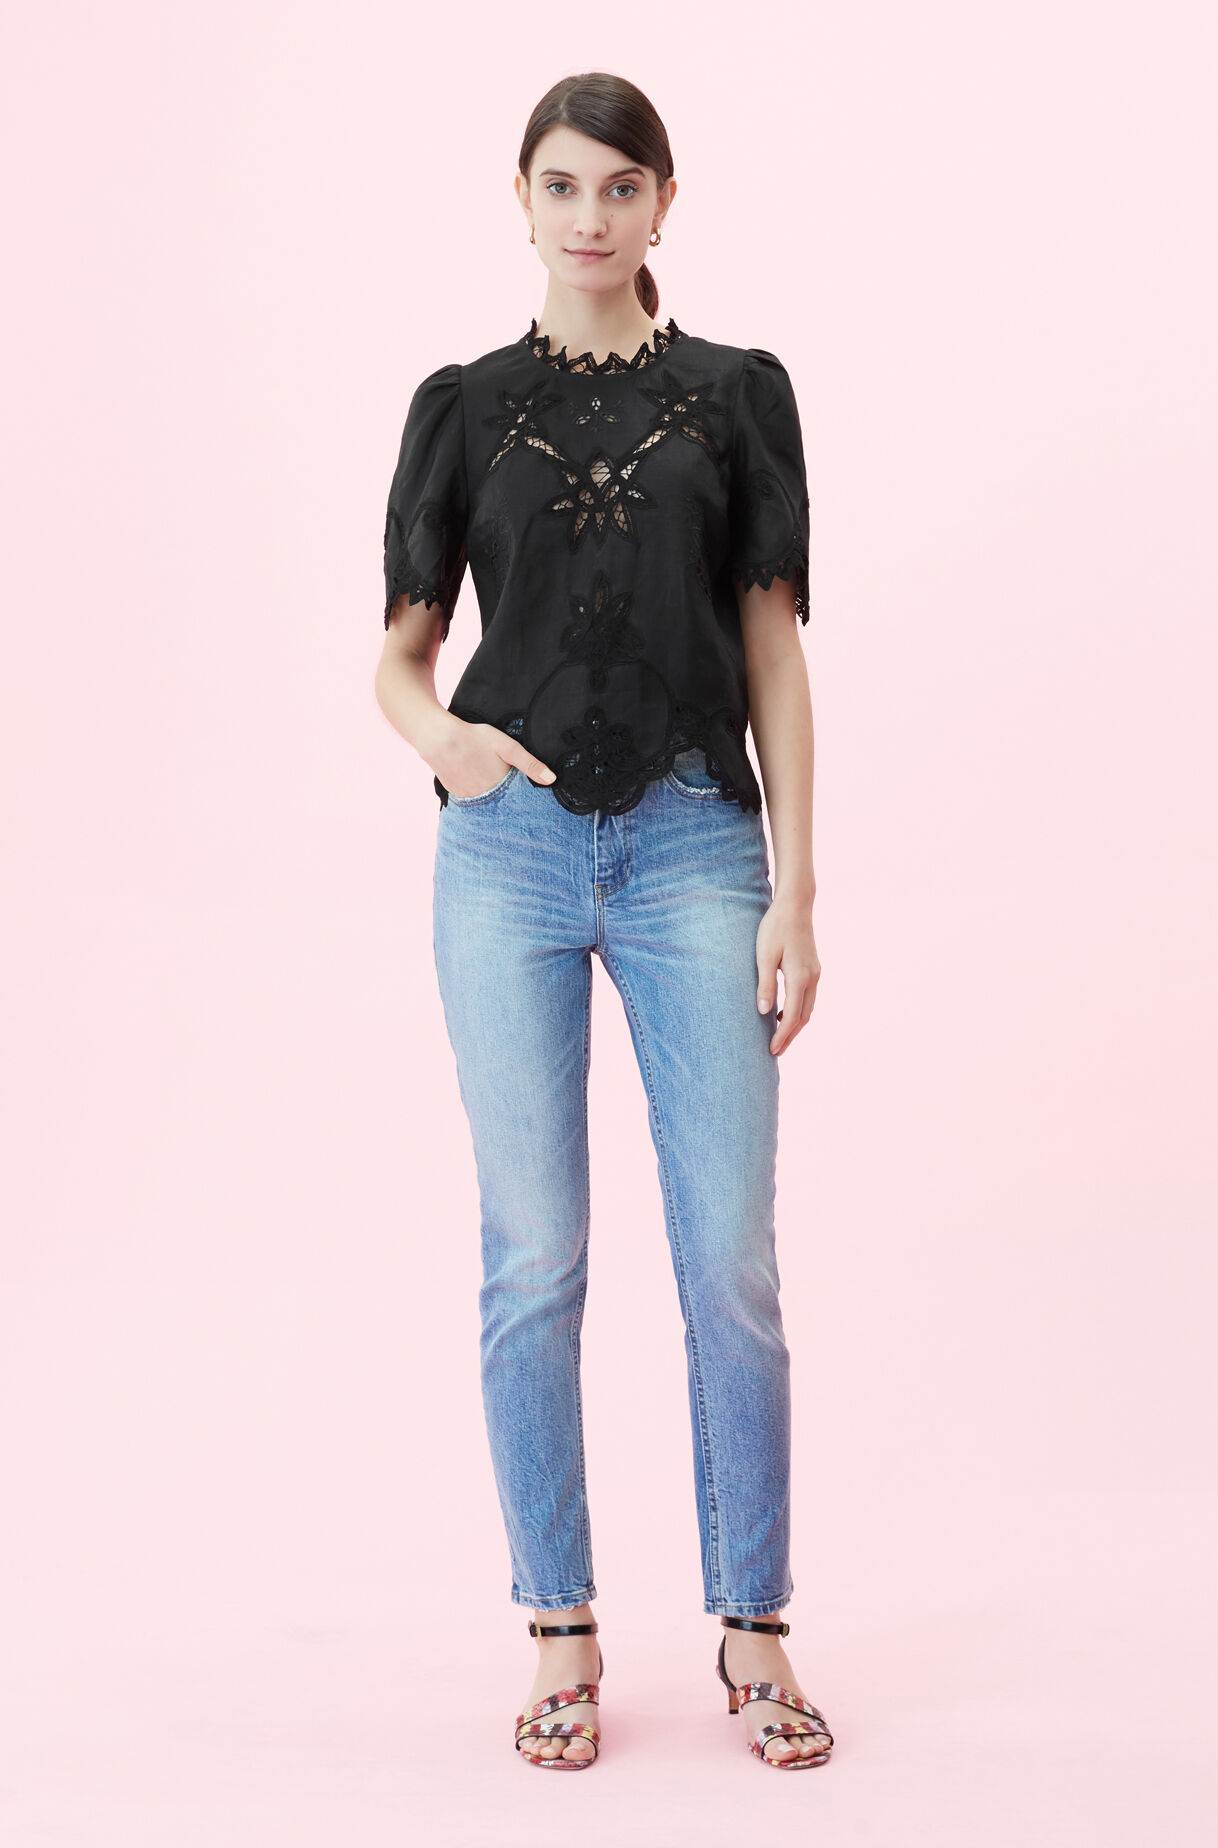 Terri Embroidered Top, , large